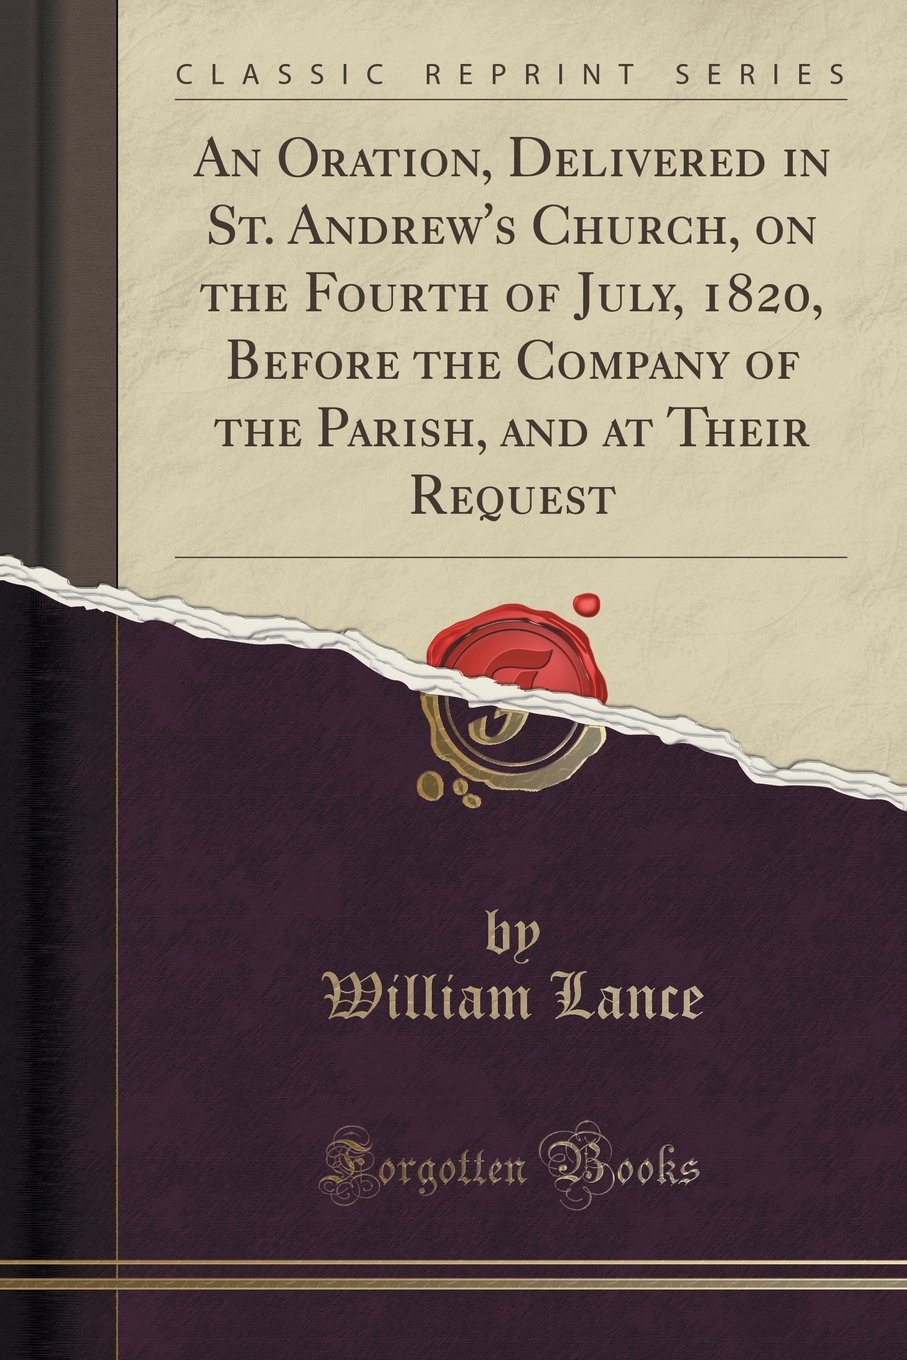 Download An Oration, Delivered in St. Andrew's Church, on the Fourth of July, 1820, Before the Company of the Parish, and at Their Request (Classic Reprint) ebook